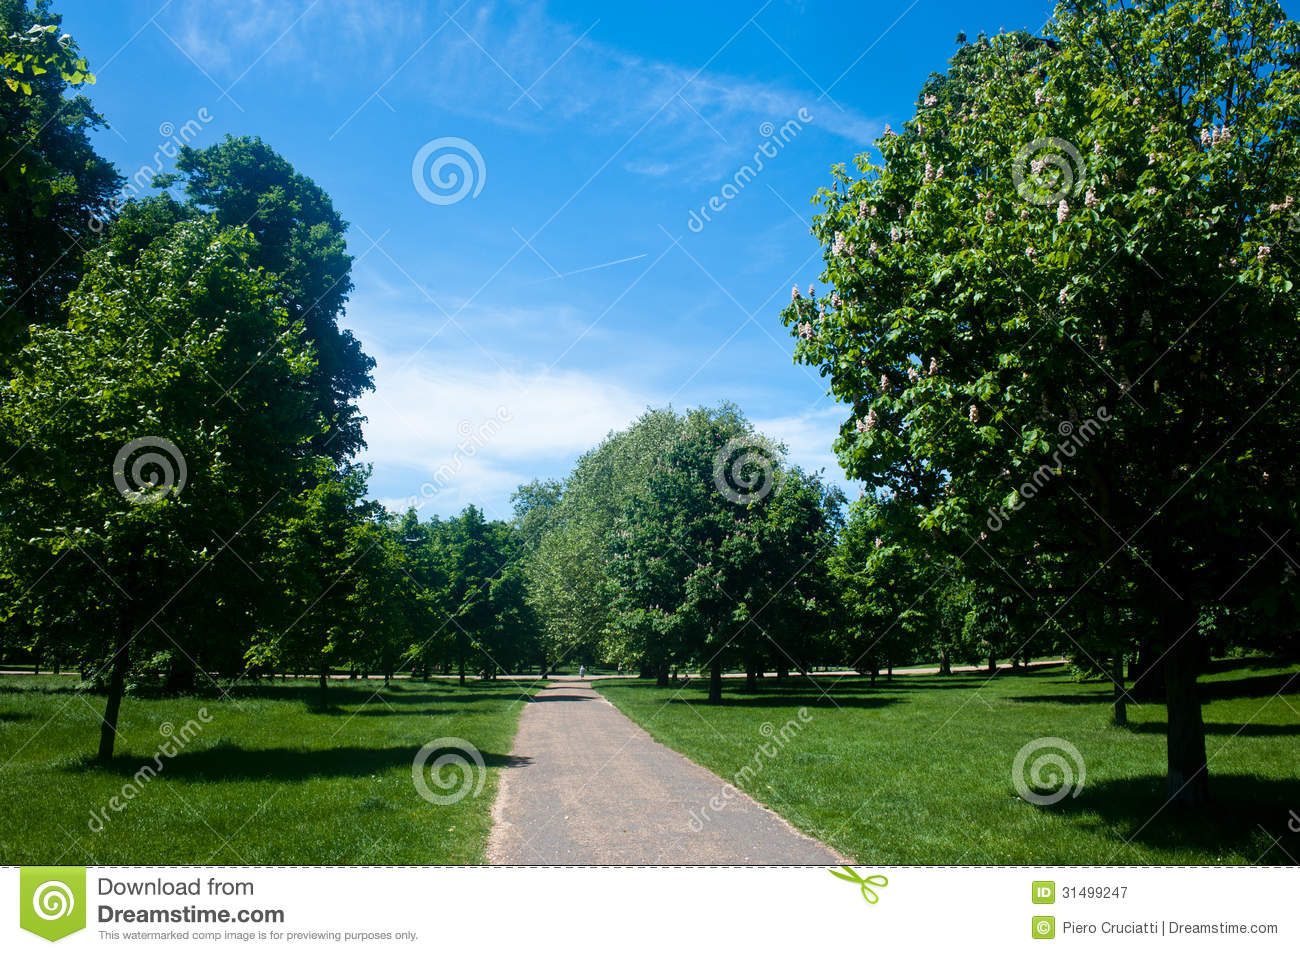 Kensington gardens in london royalty free stock for Garden trees london